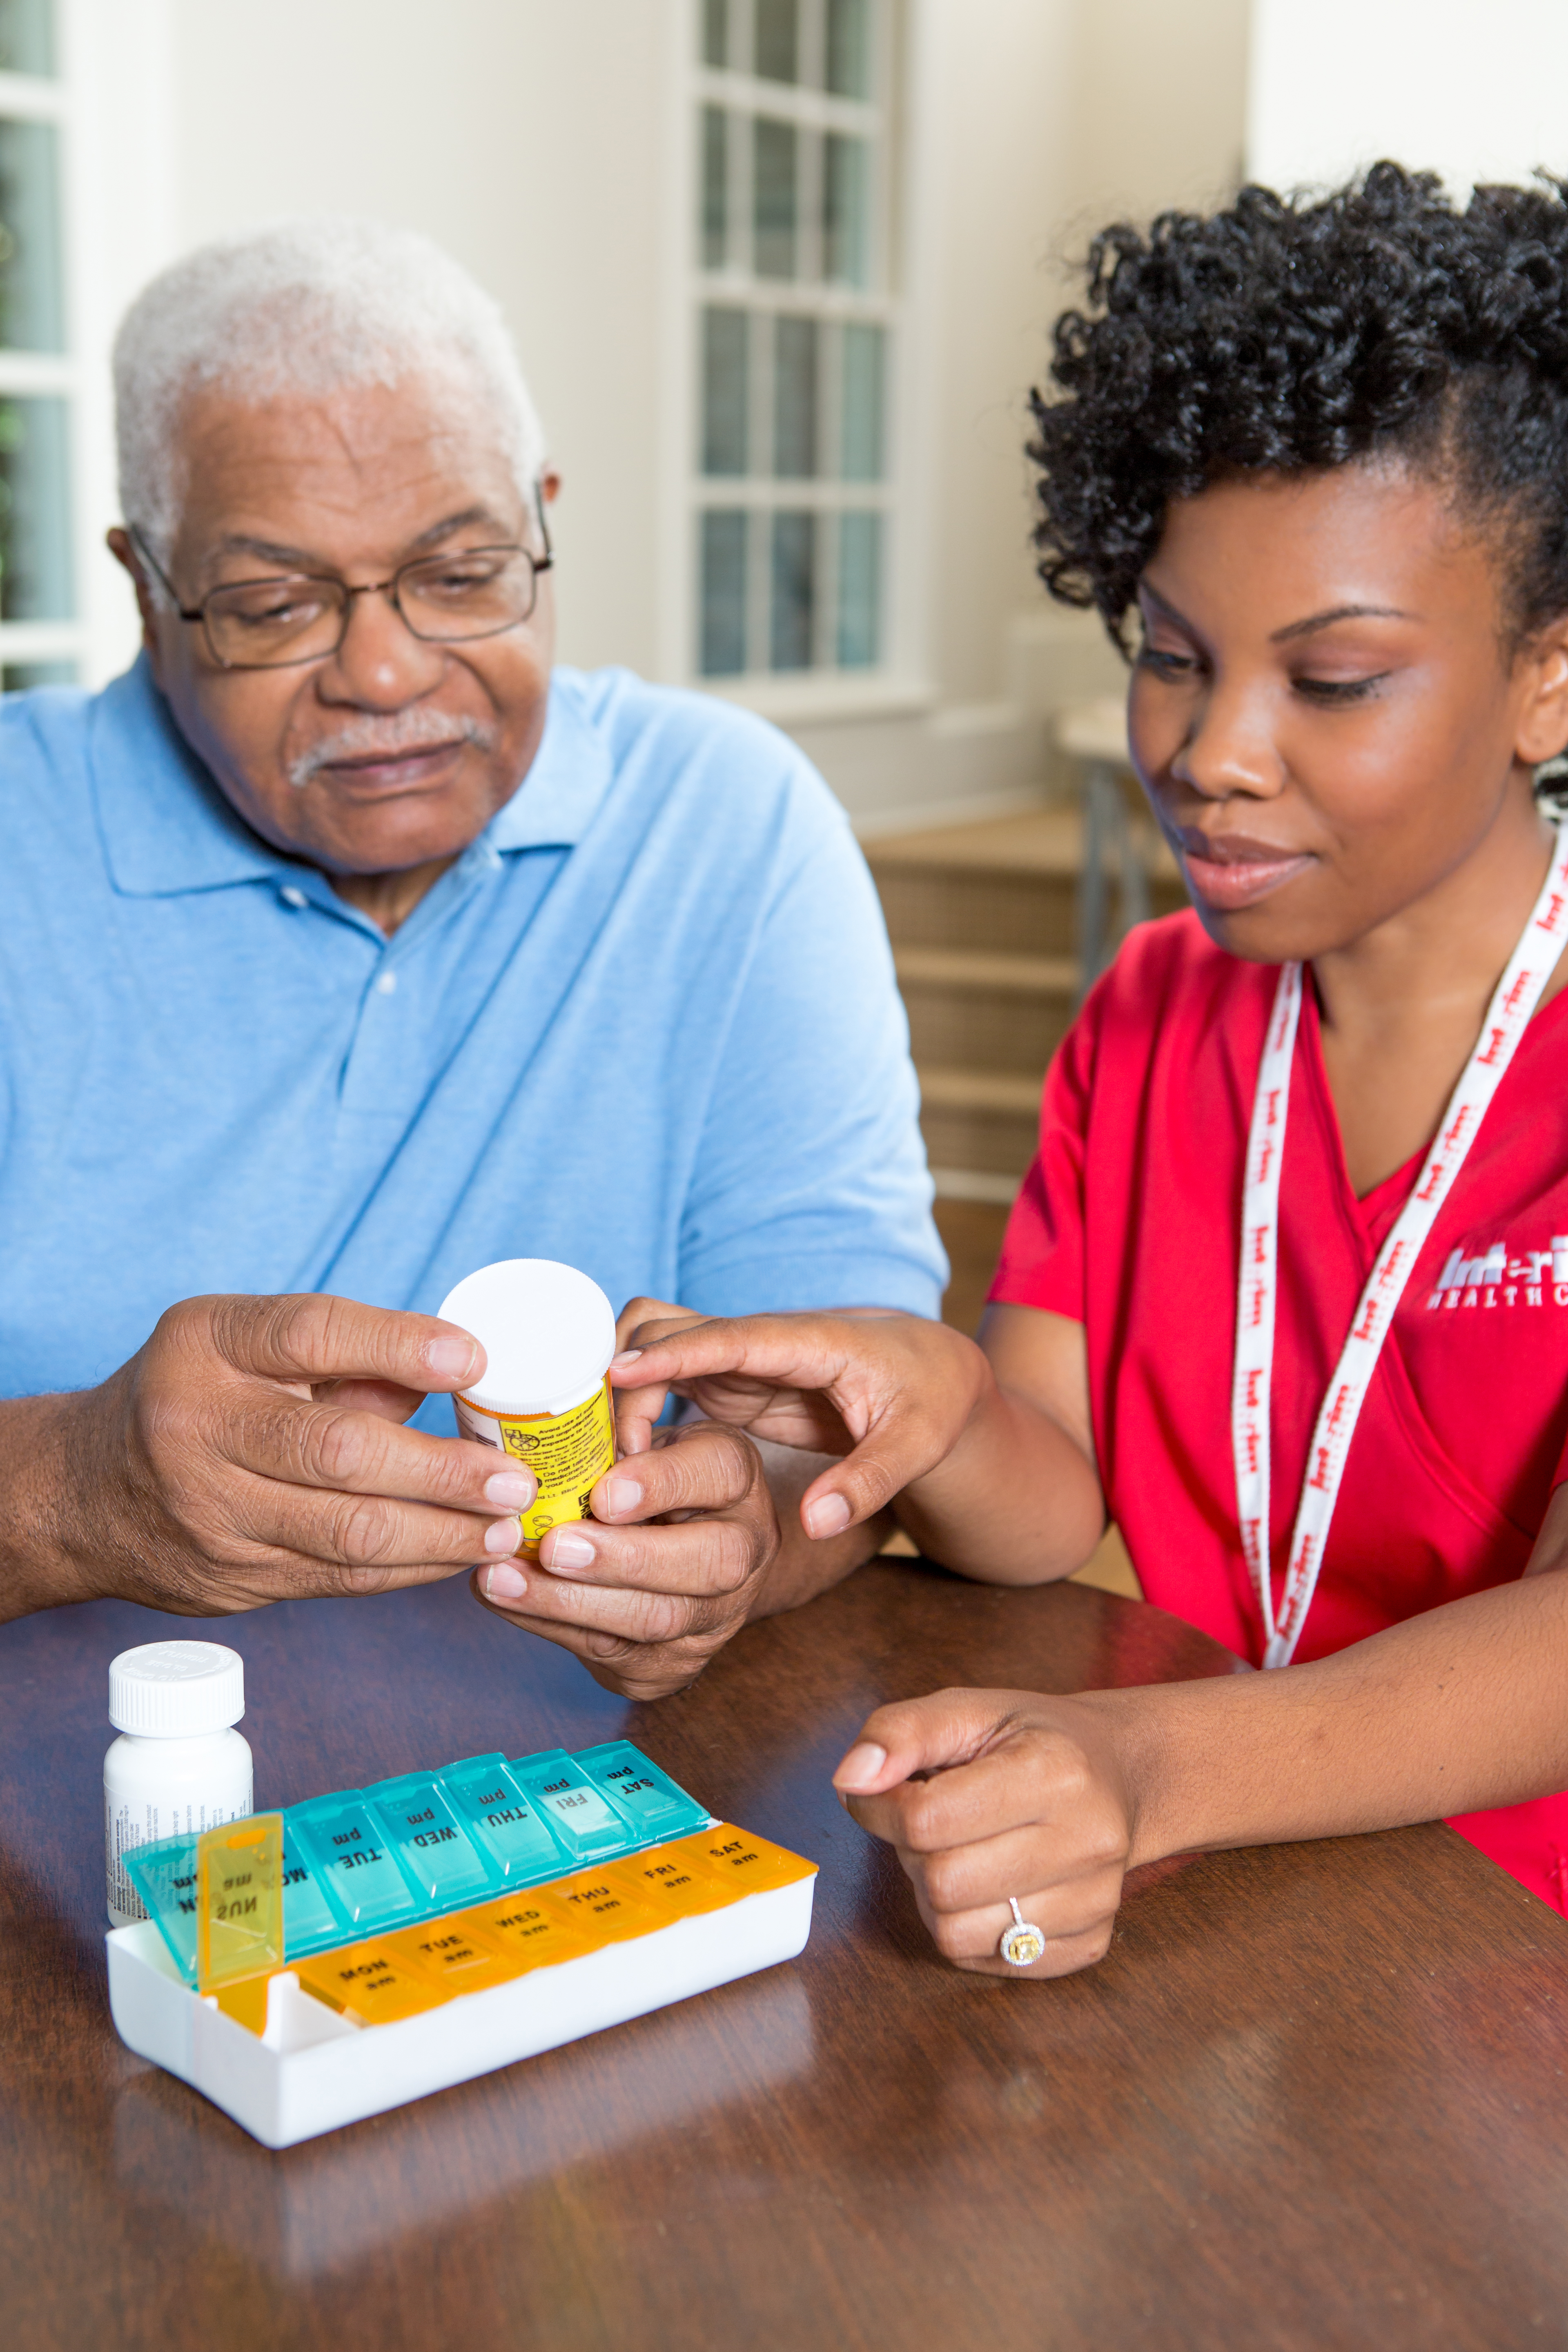 Taking medications can be confusing to older adults.